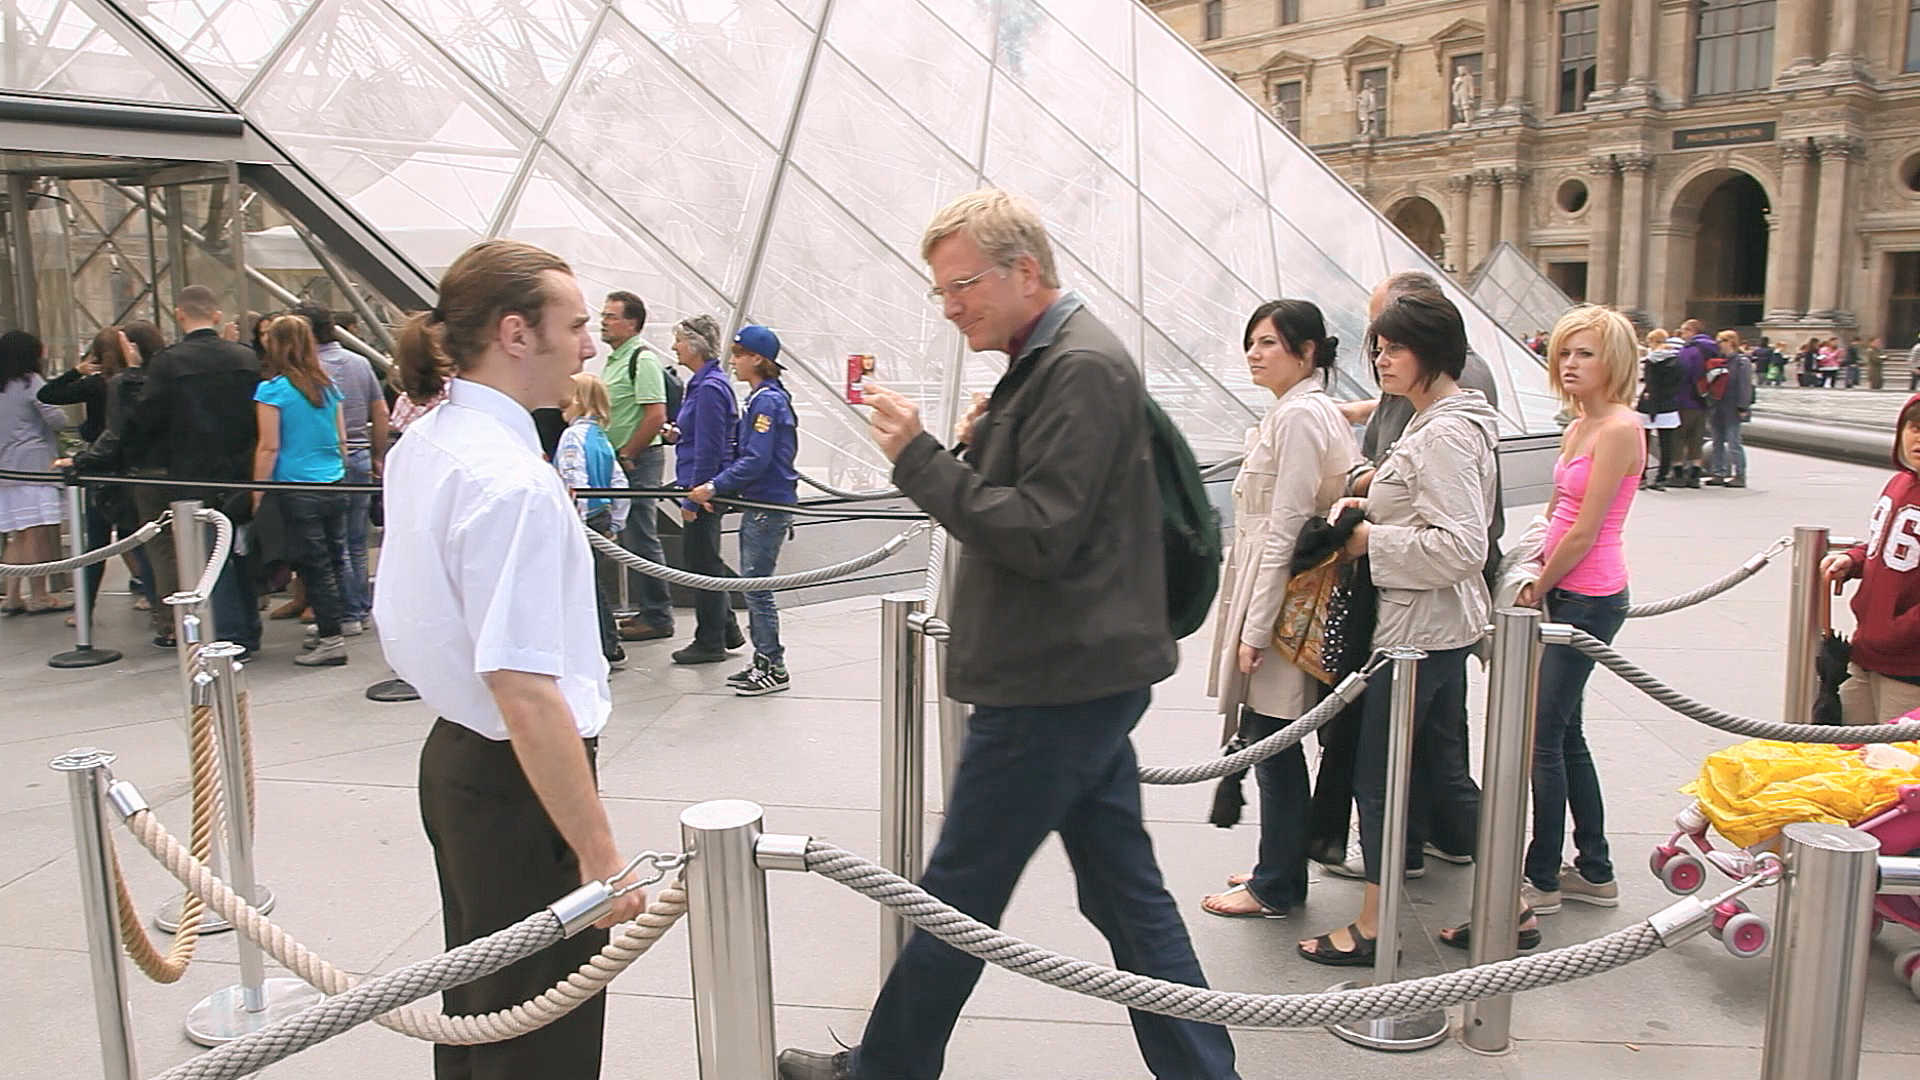 Rick Steves passes the museum line at the Louvre